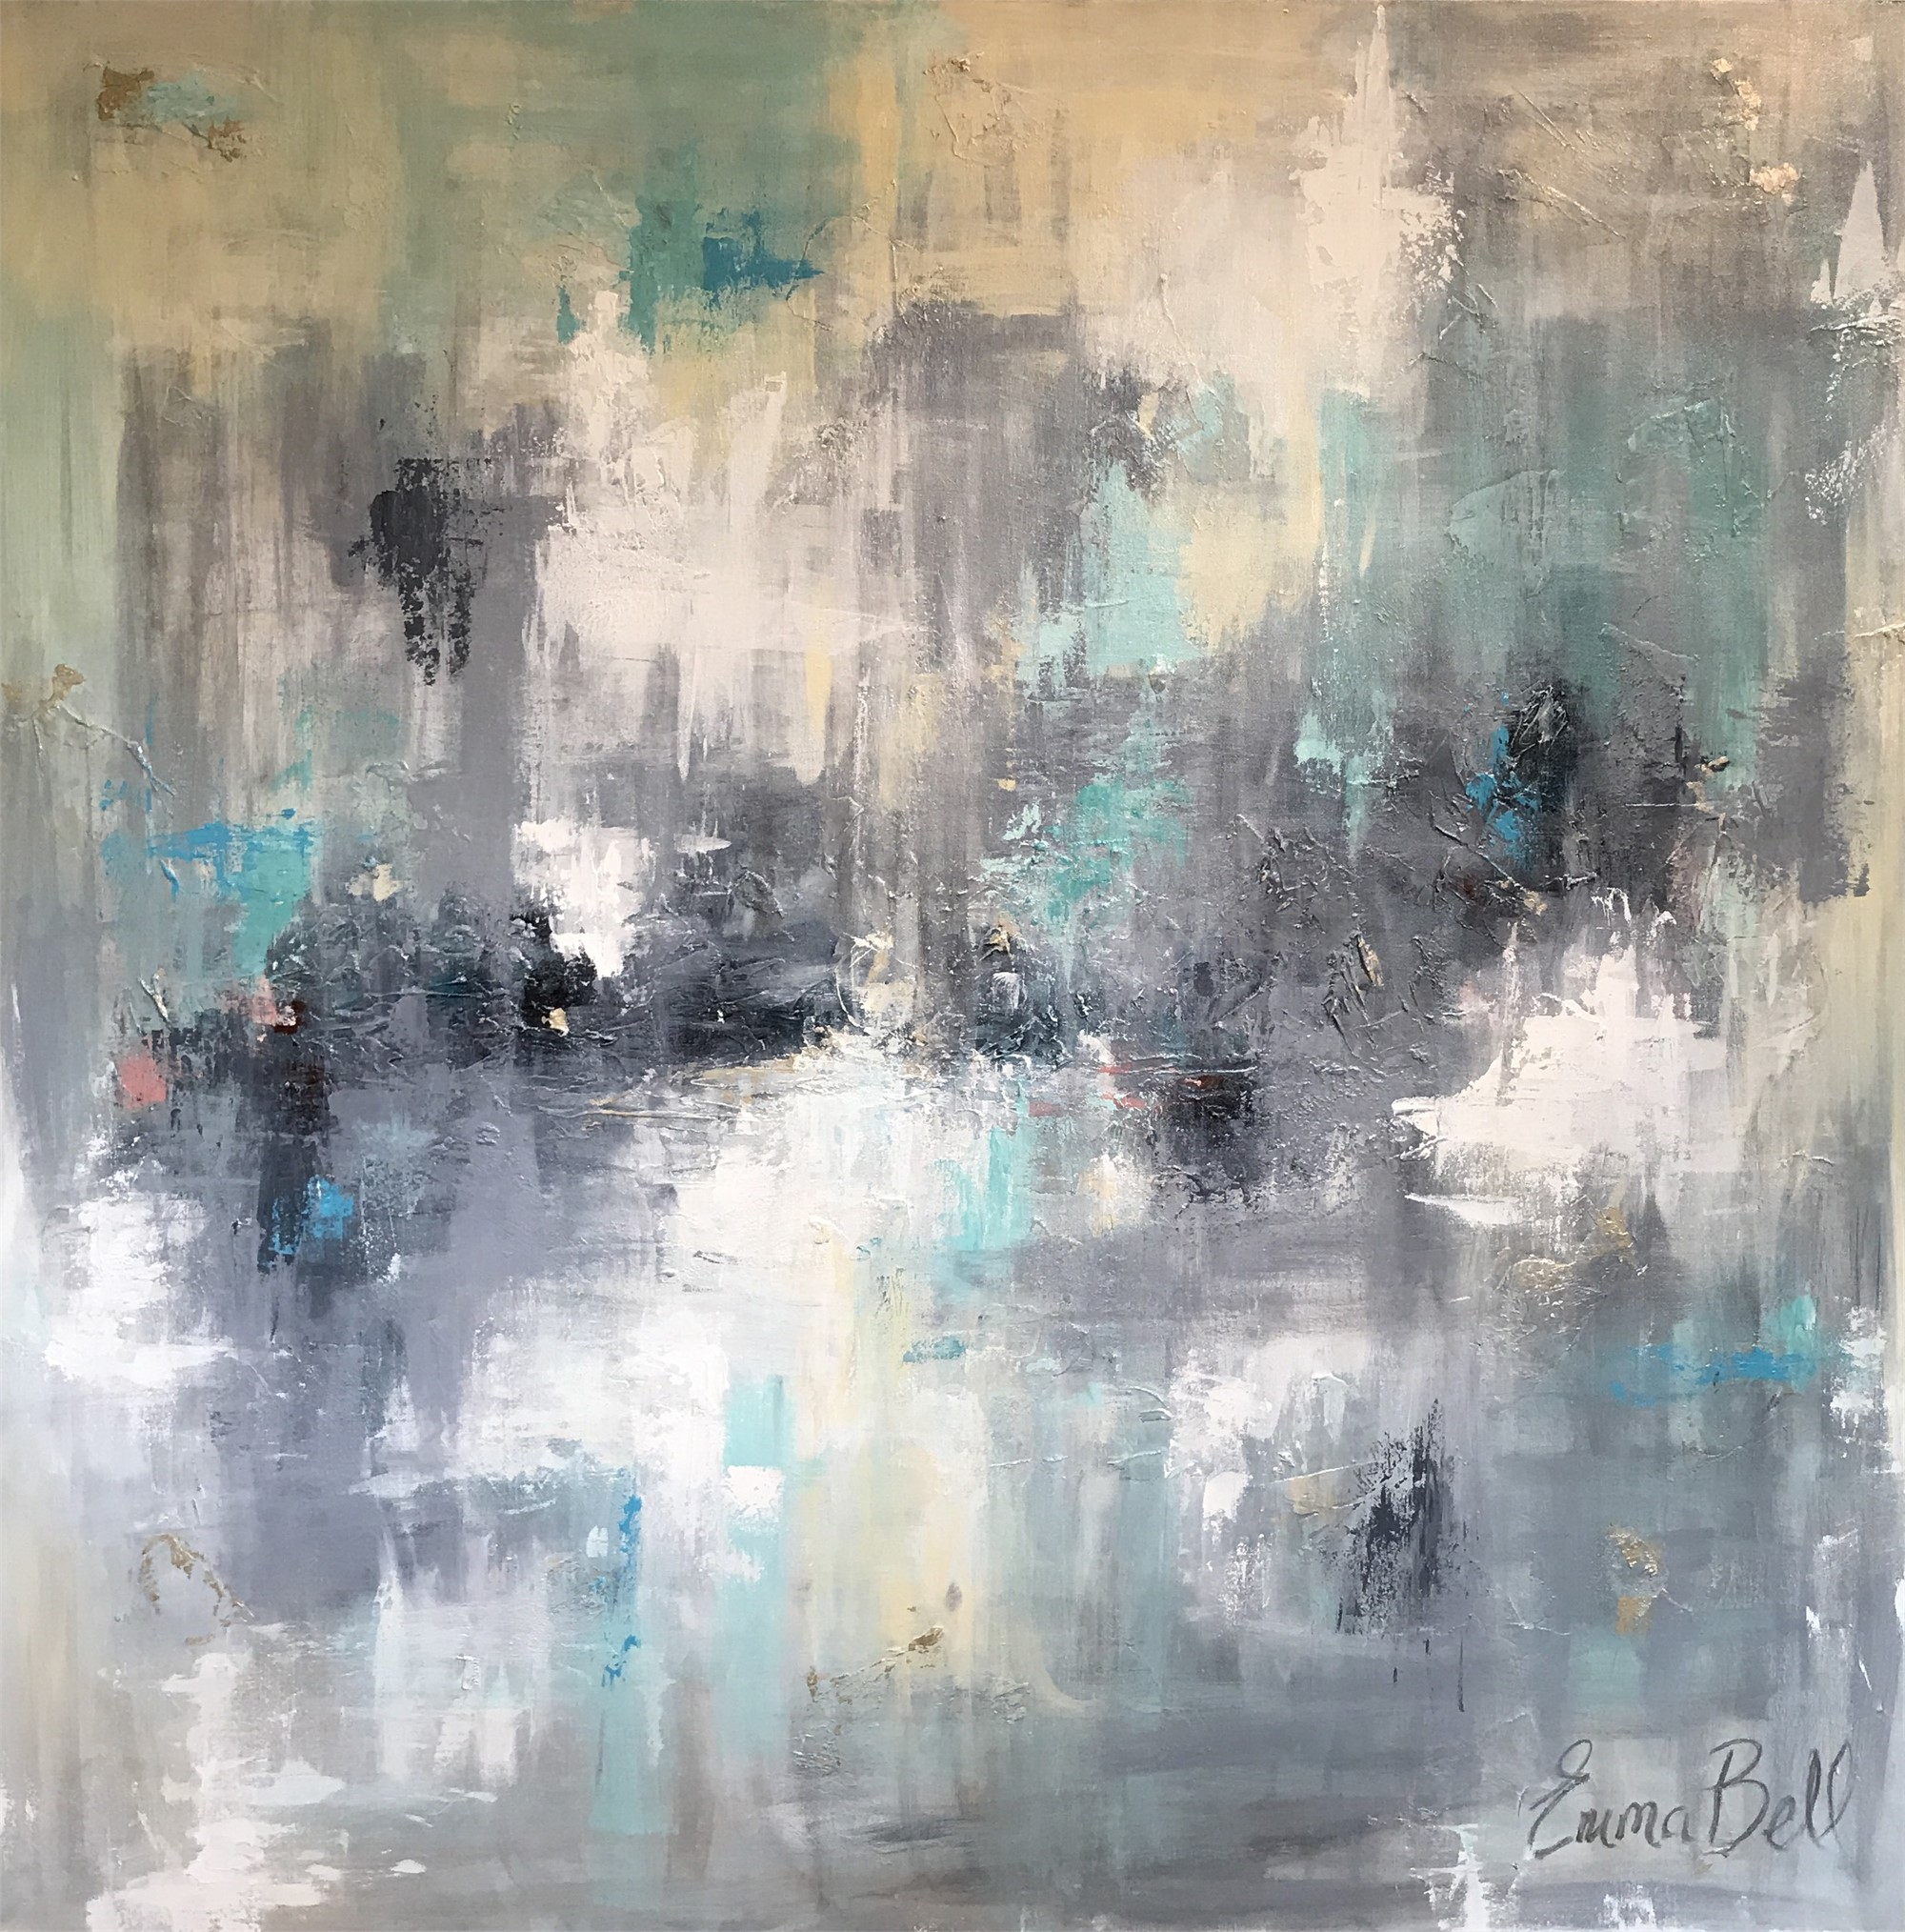 Aqua Haze - Sold by Emma Bell